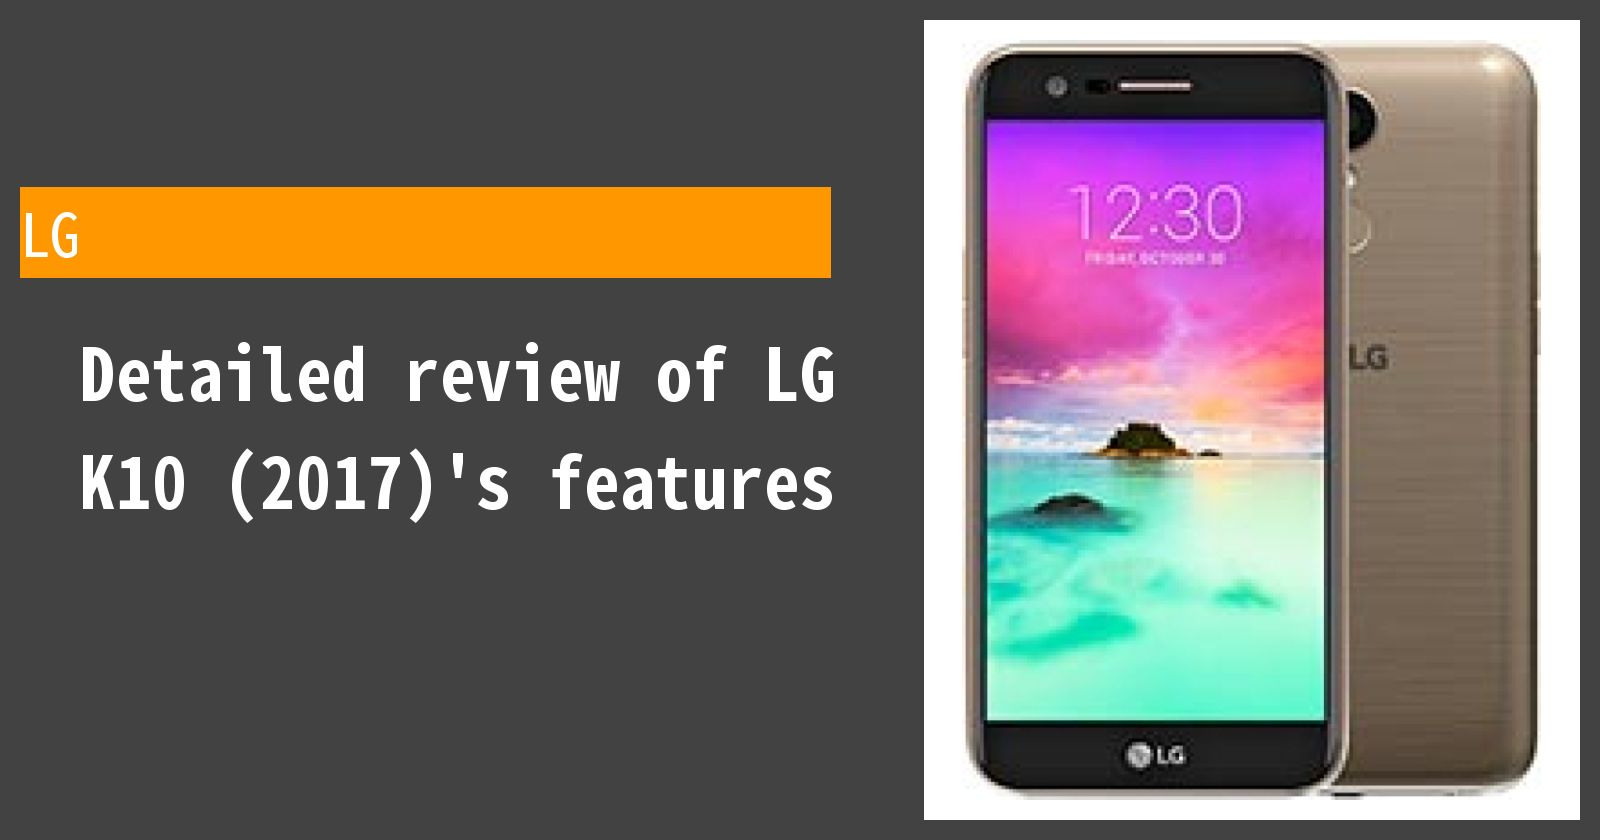 Detailed review of LG K10 (2017)'s features